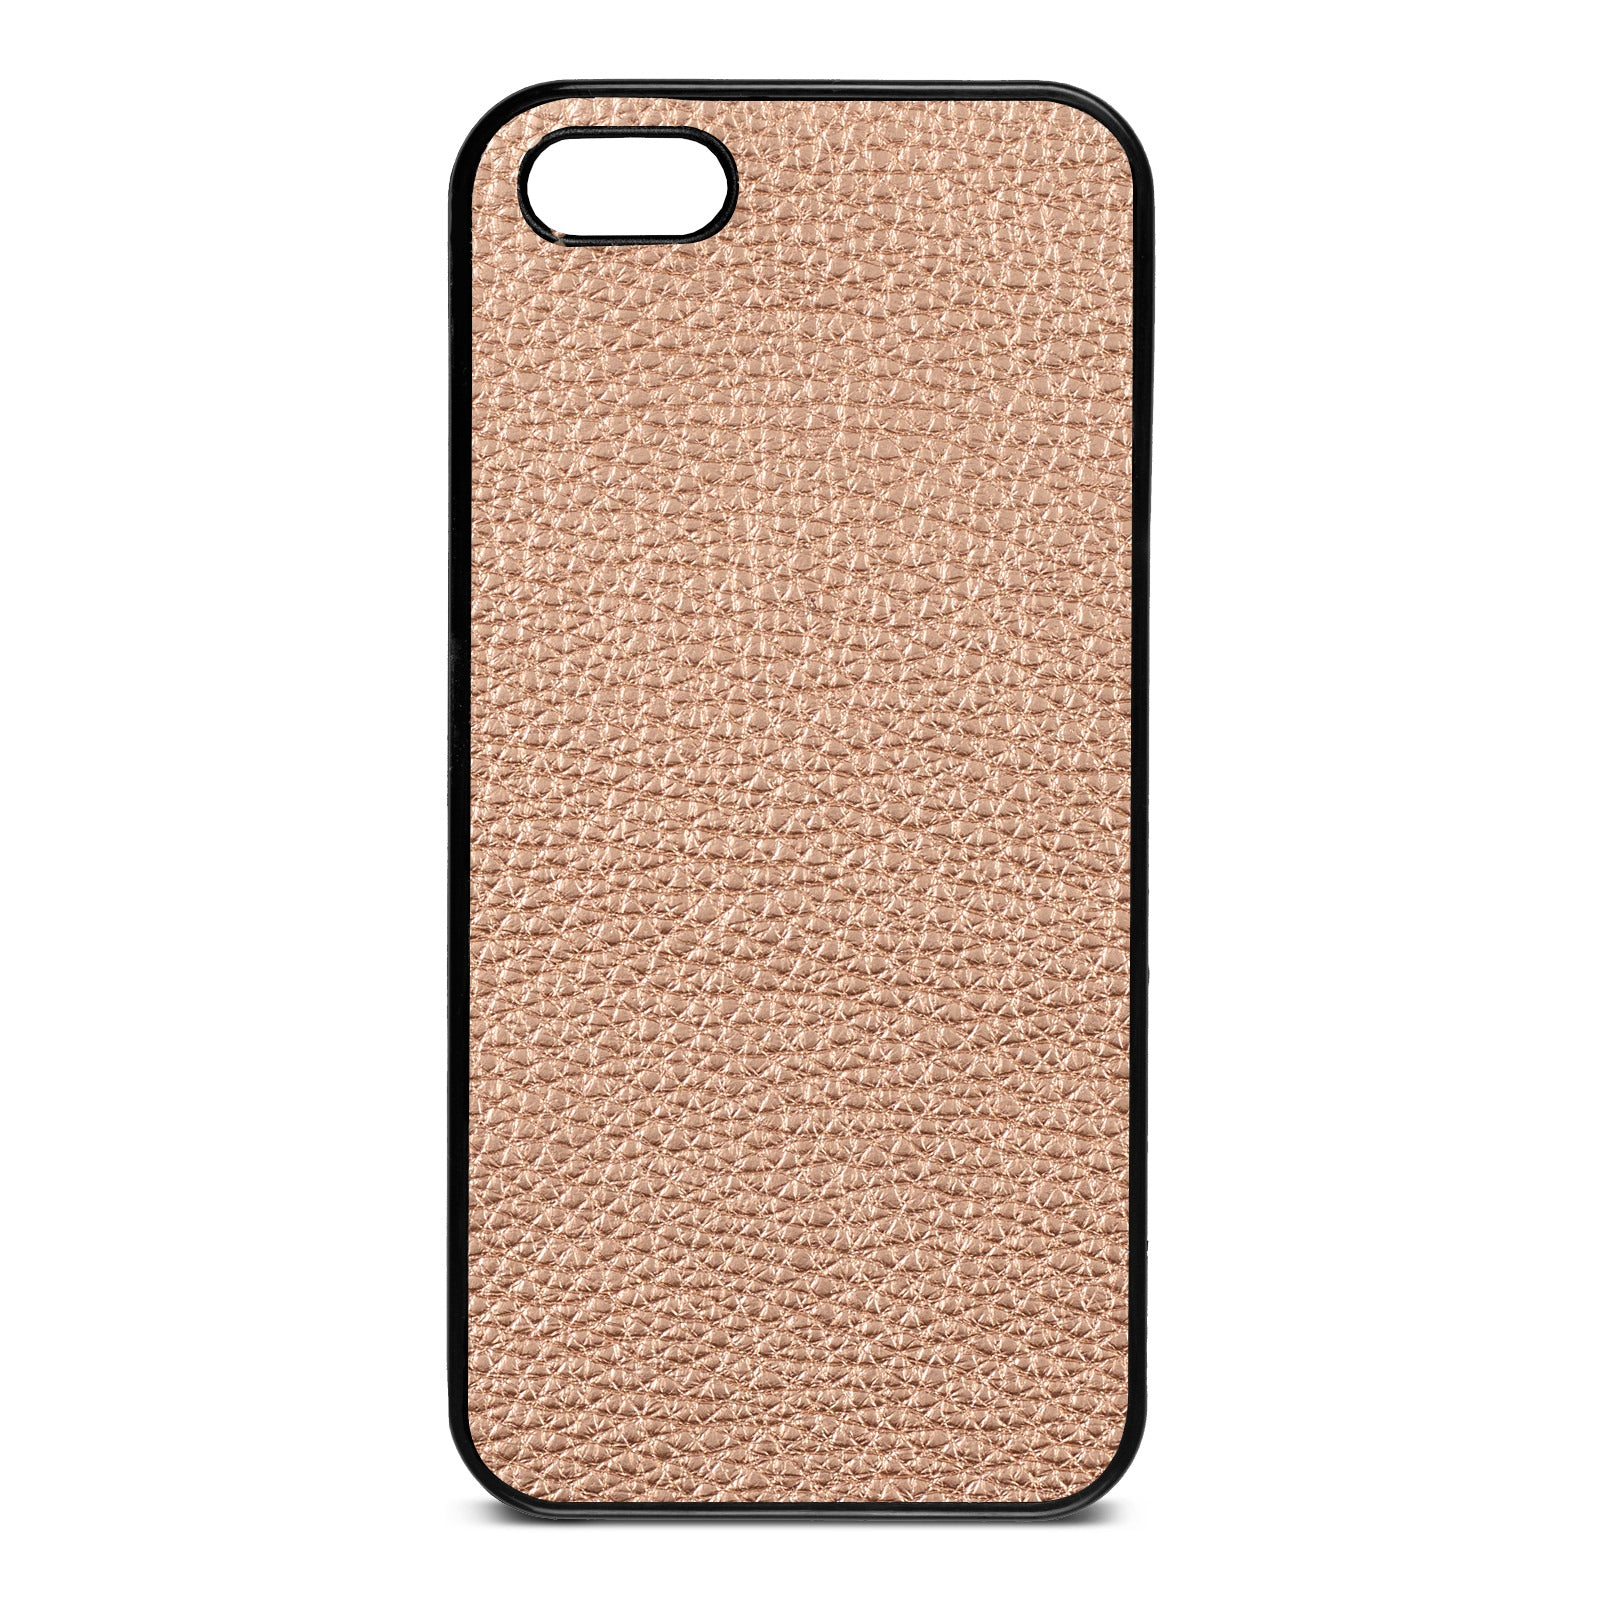 Blank iPhone 5 Rose Gold Pebble Leather Case